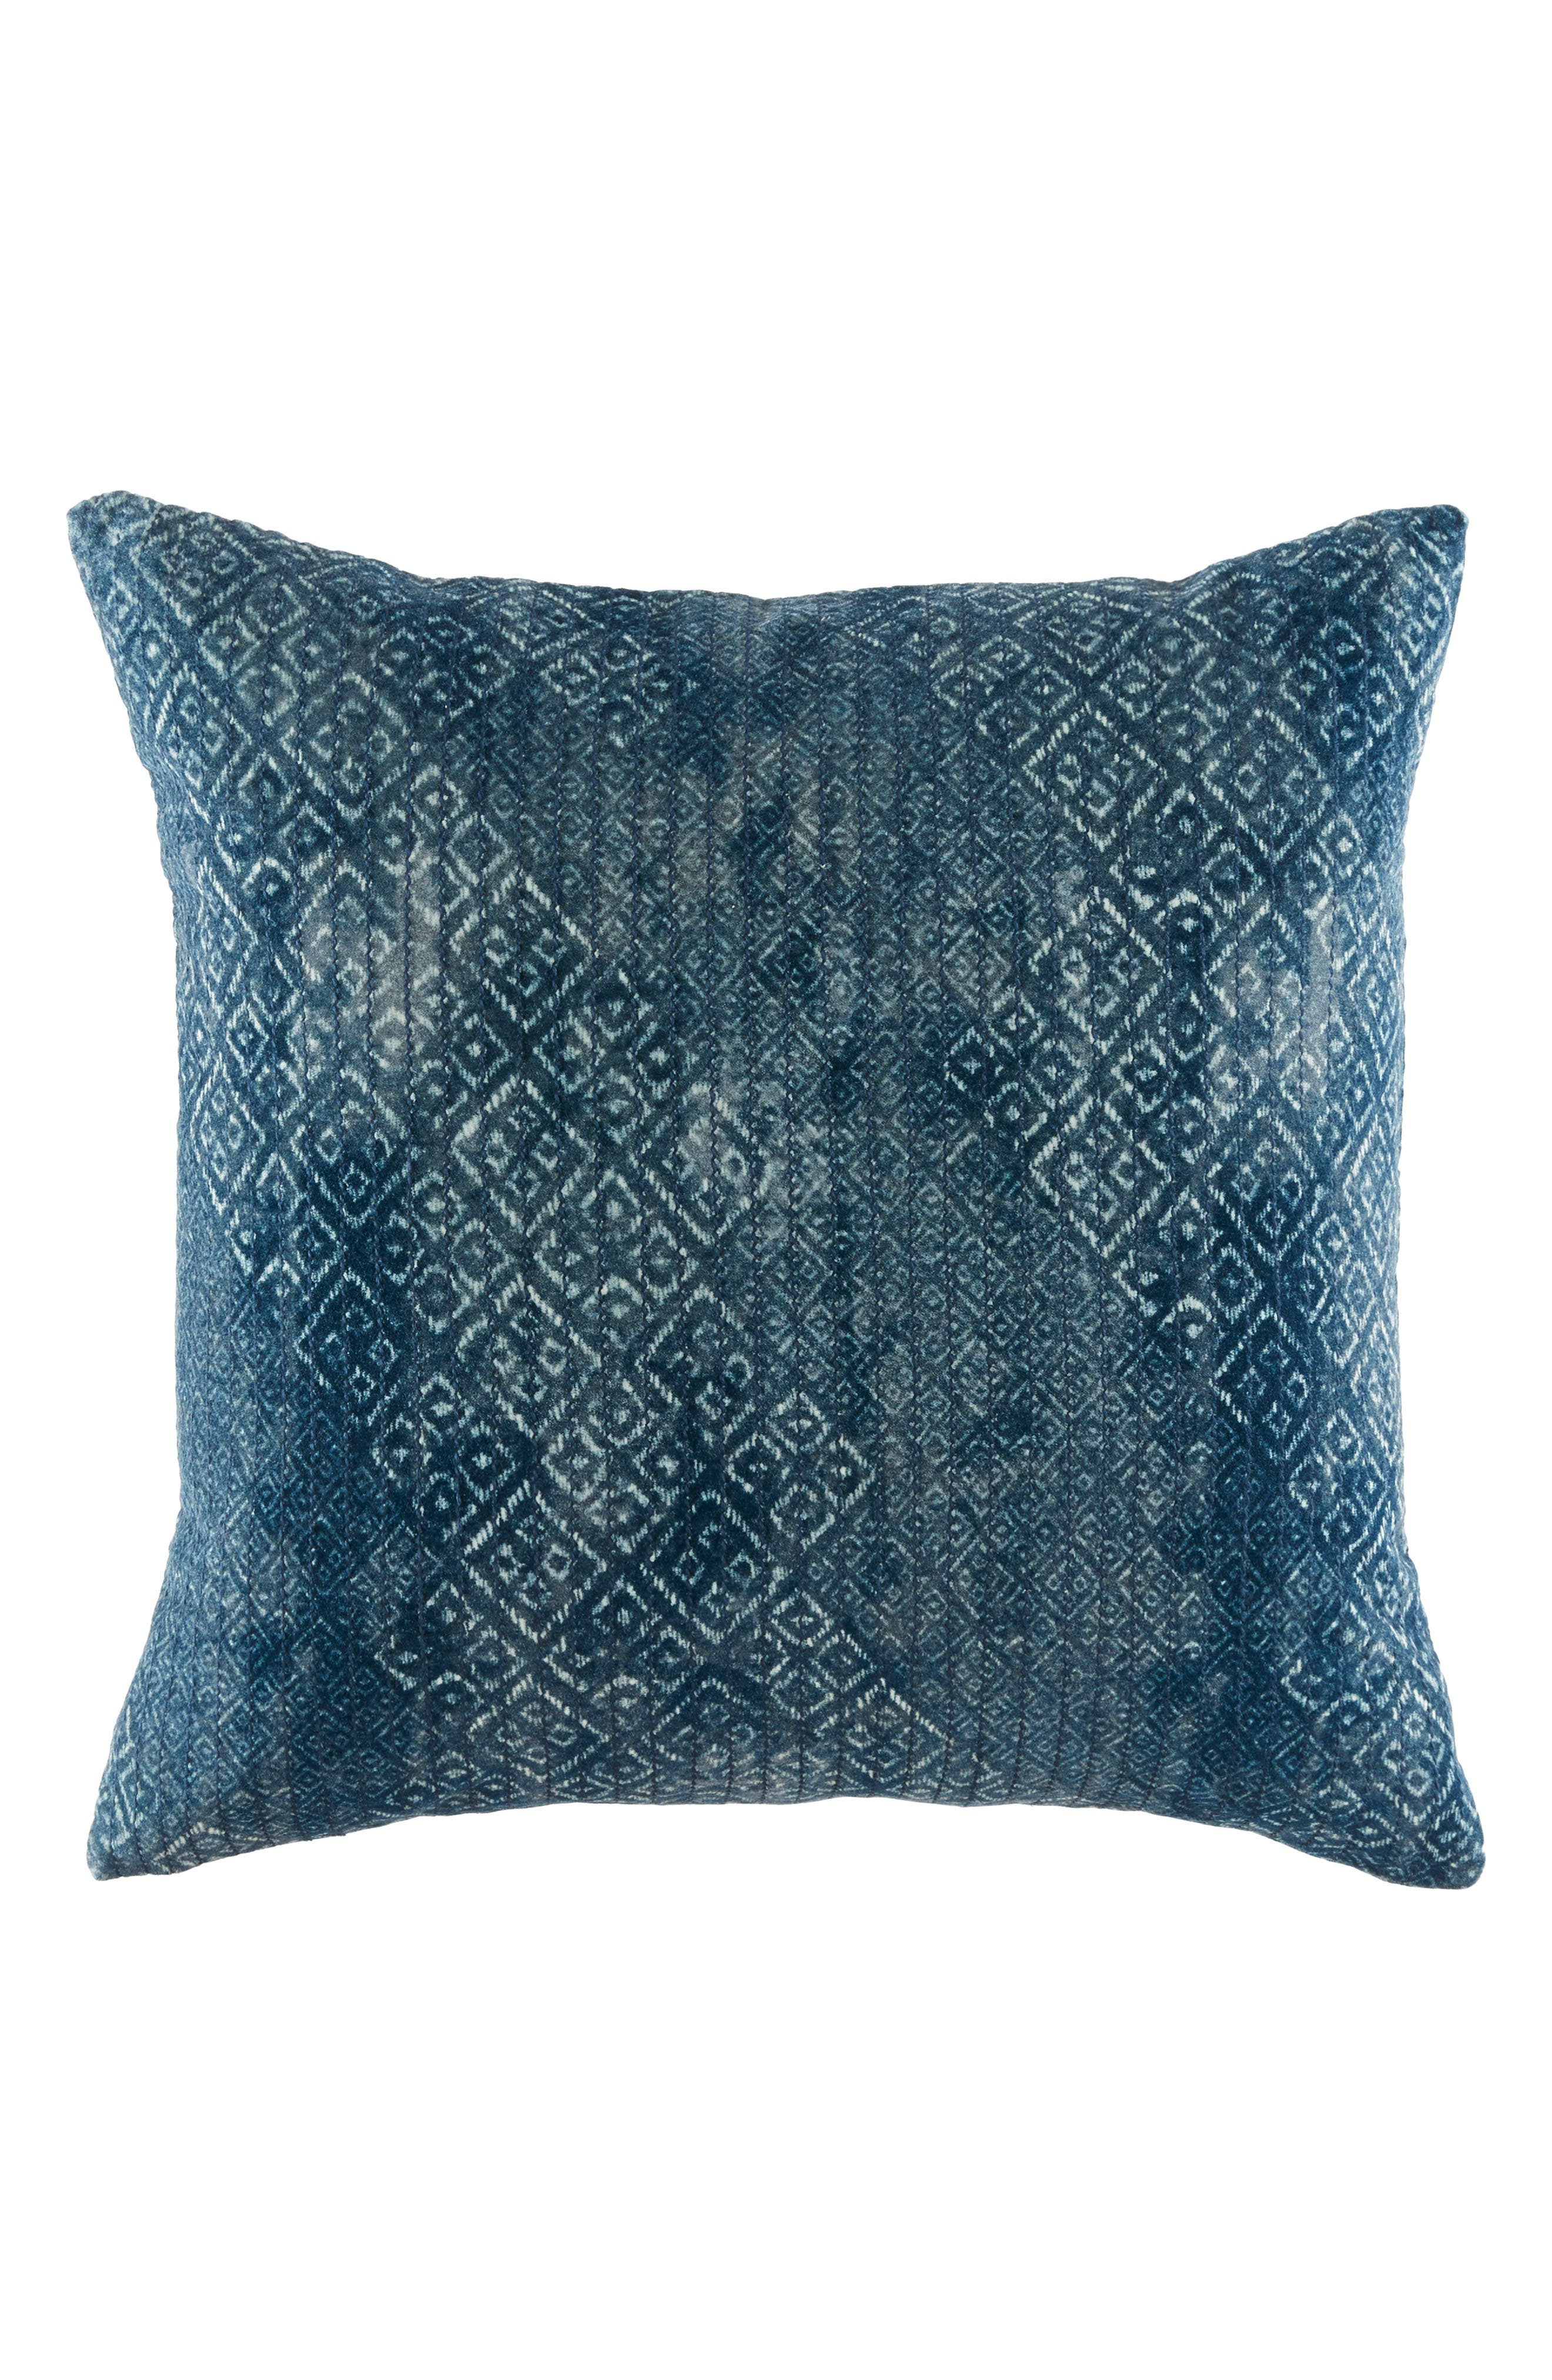 Pala Accent Pillow,                         Main,                         color, 400